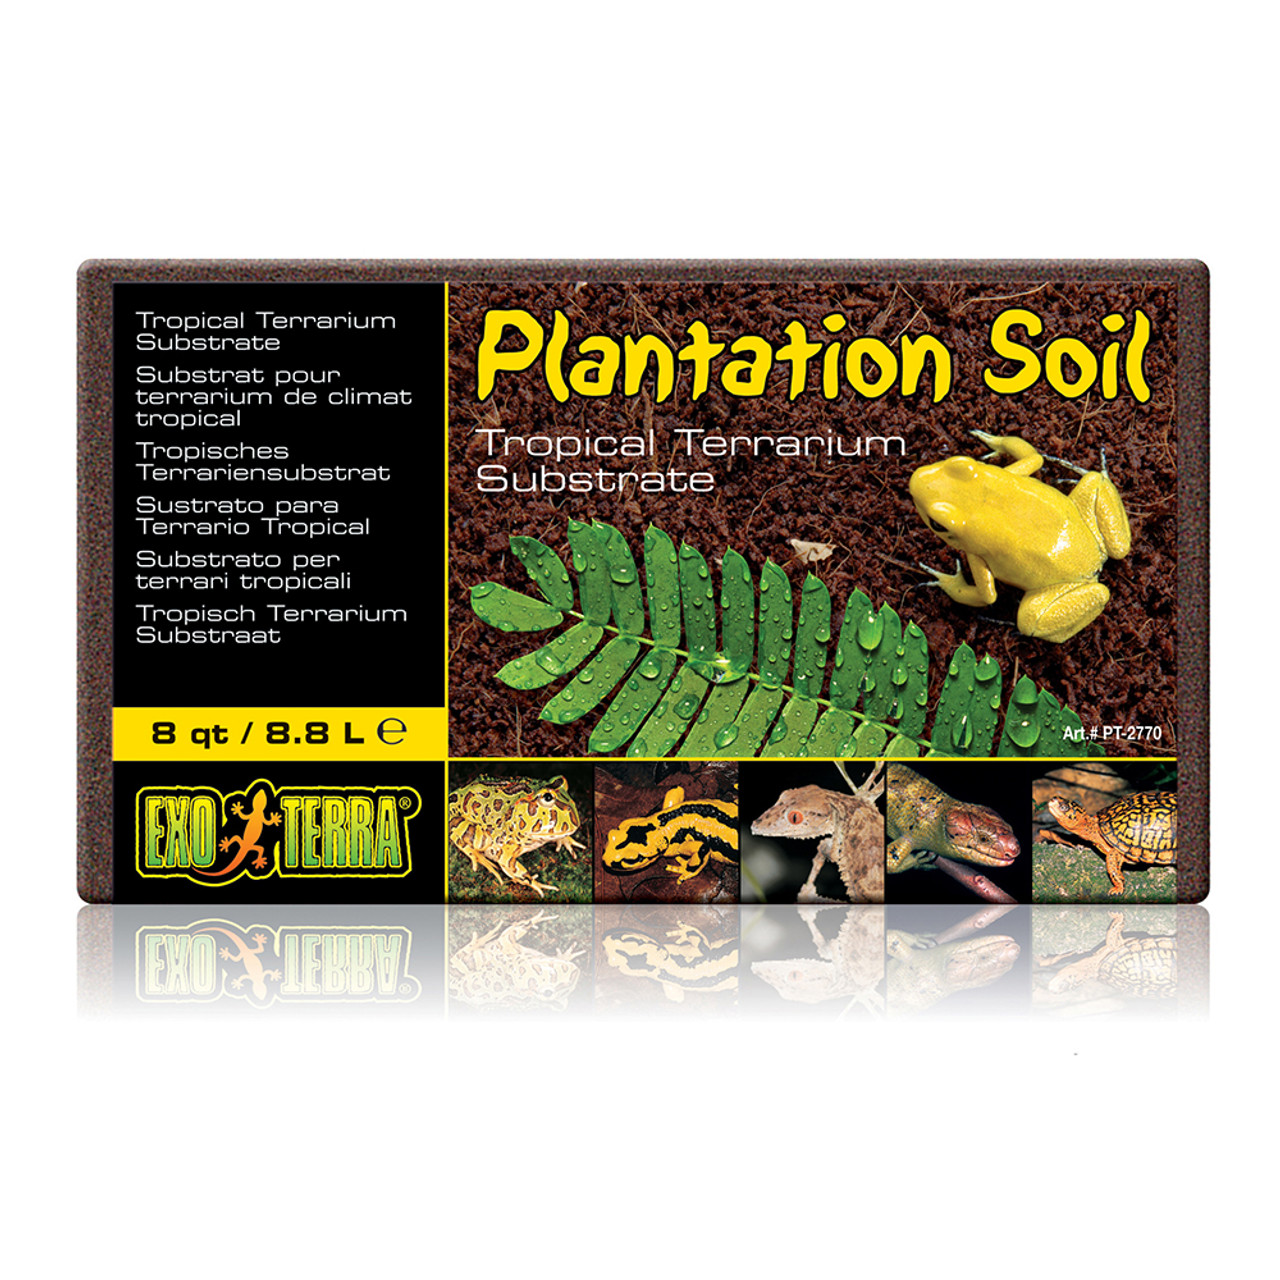 Exo Terra Plantation Soil Tropical Terrarium Substrate